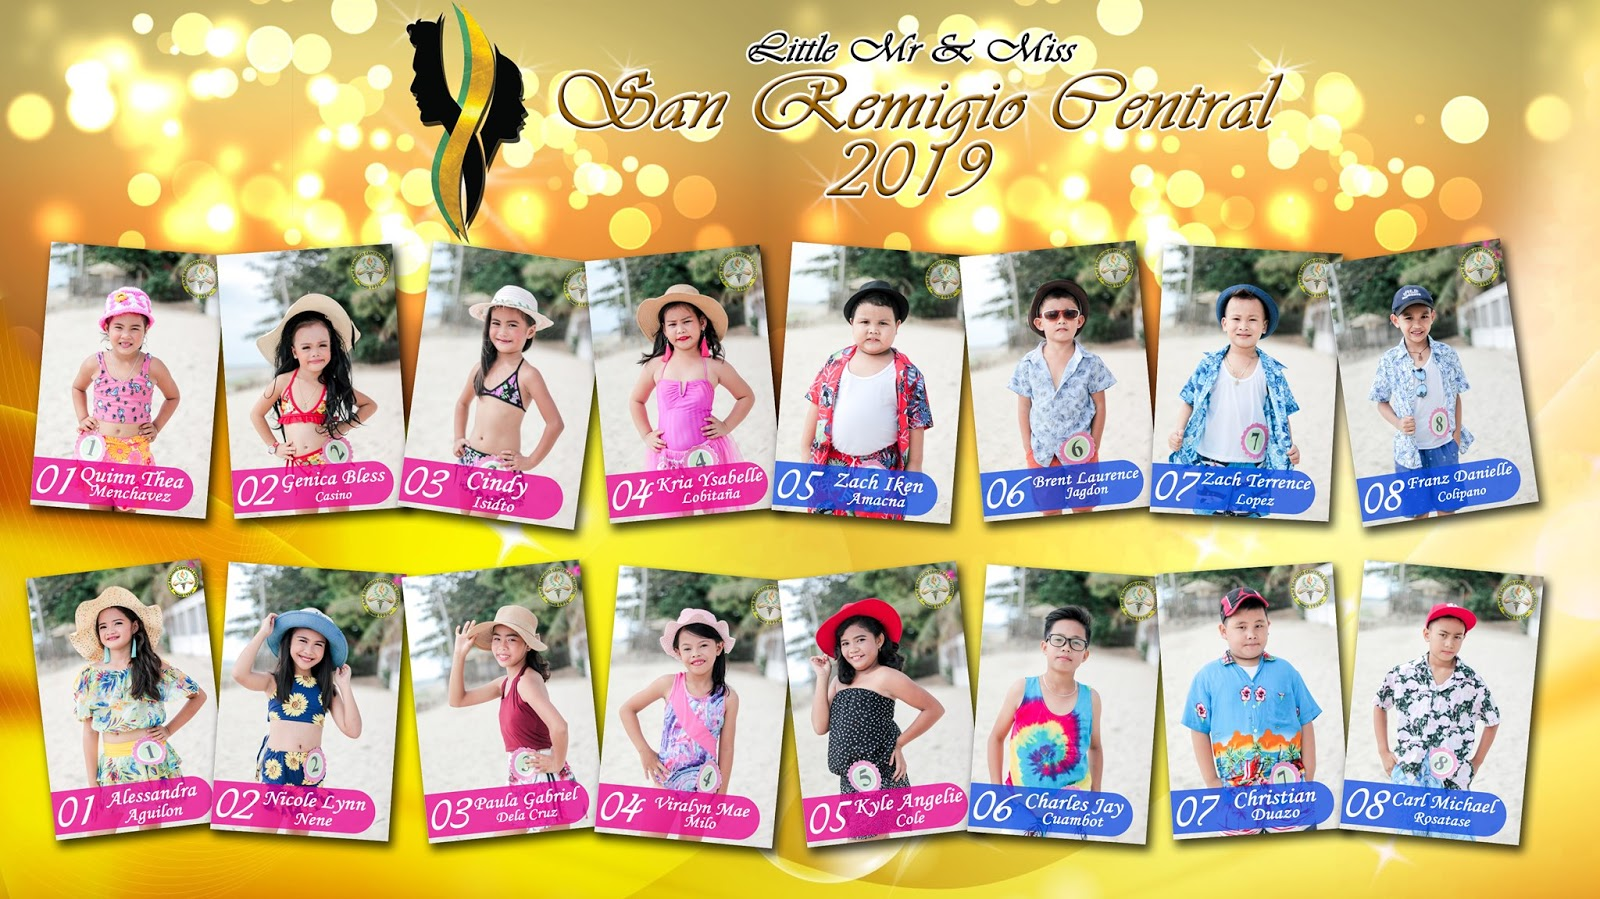 little mr and miss san remigio 2019